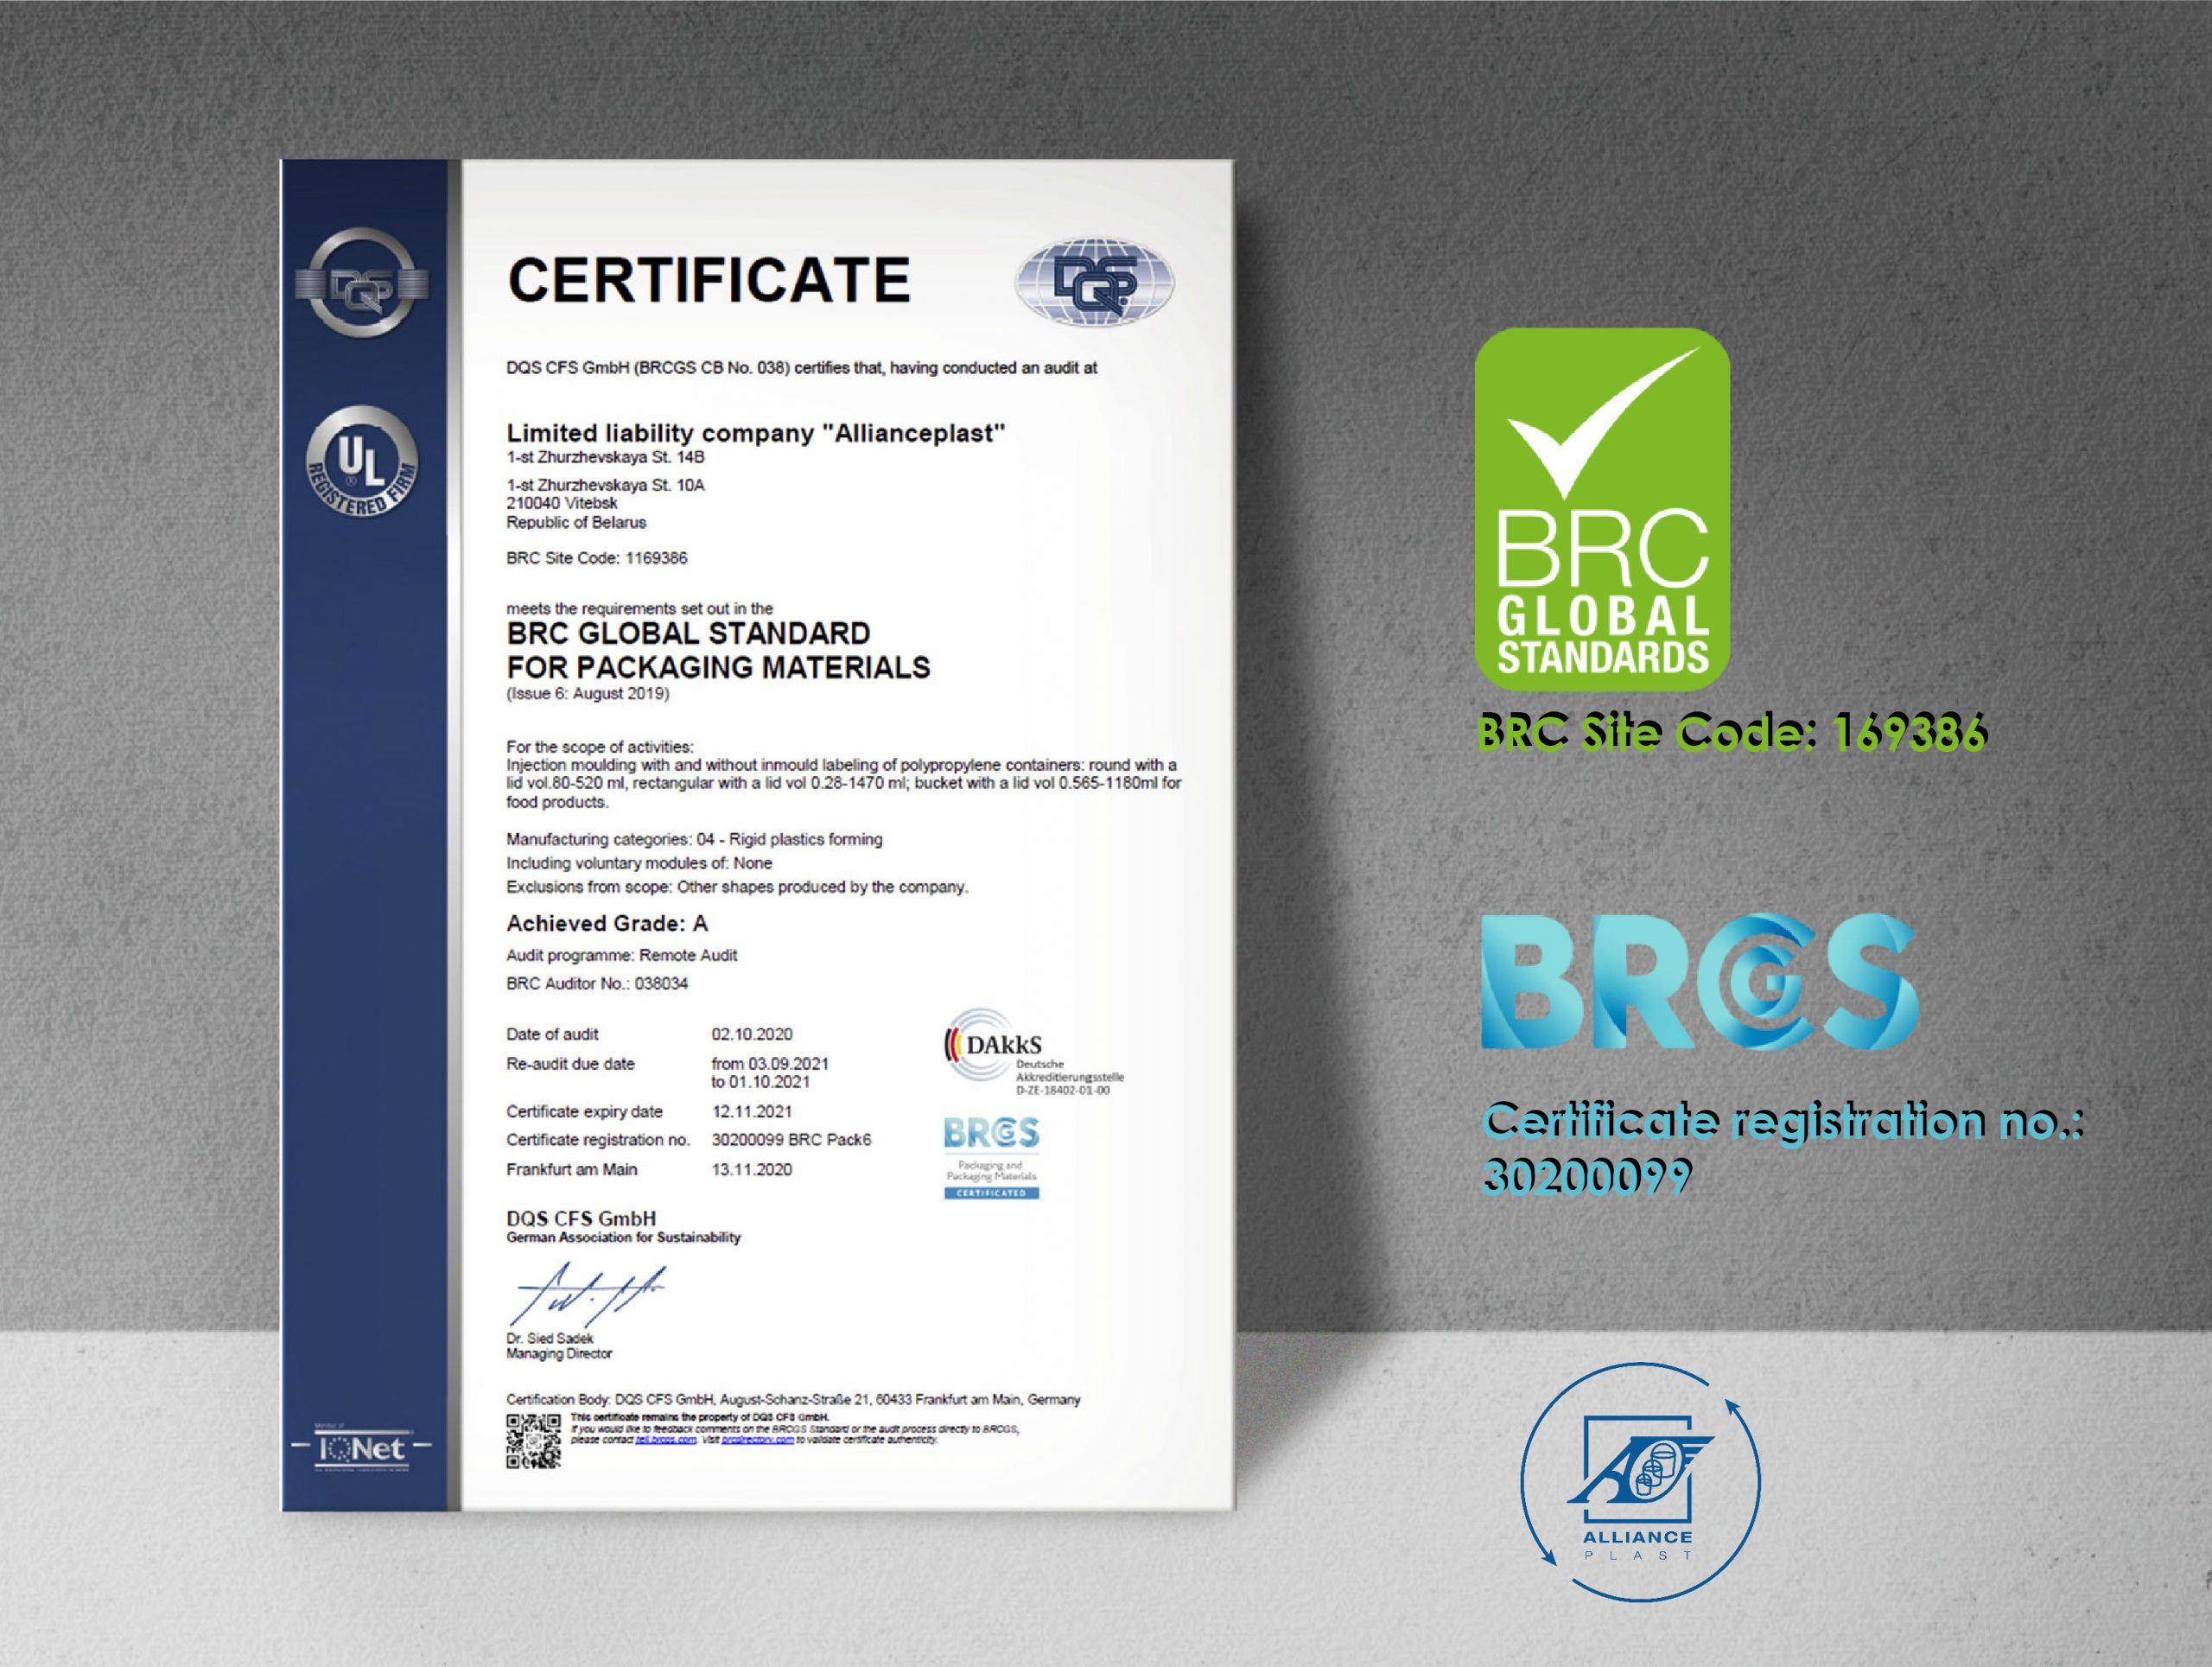 brc certification certificate safety